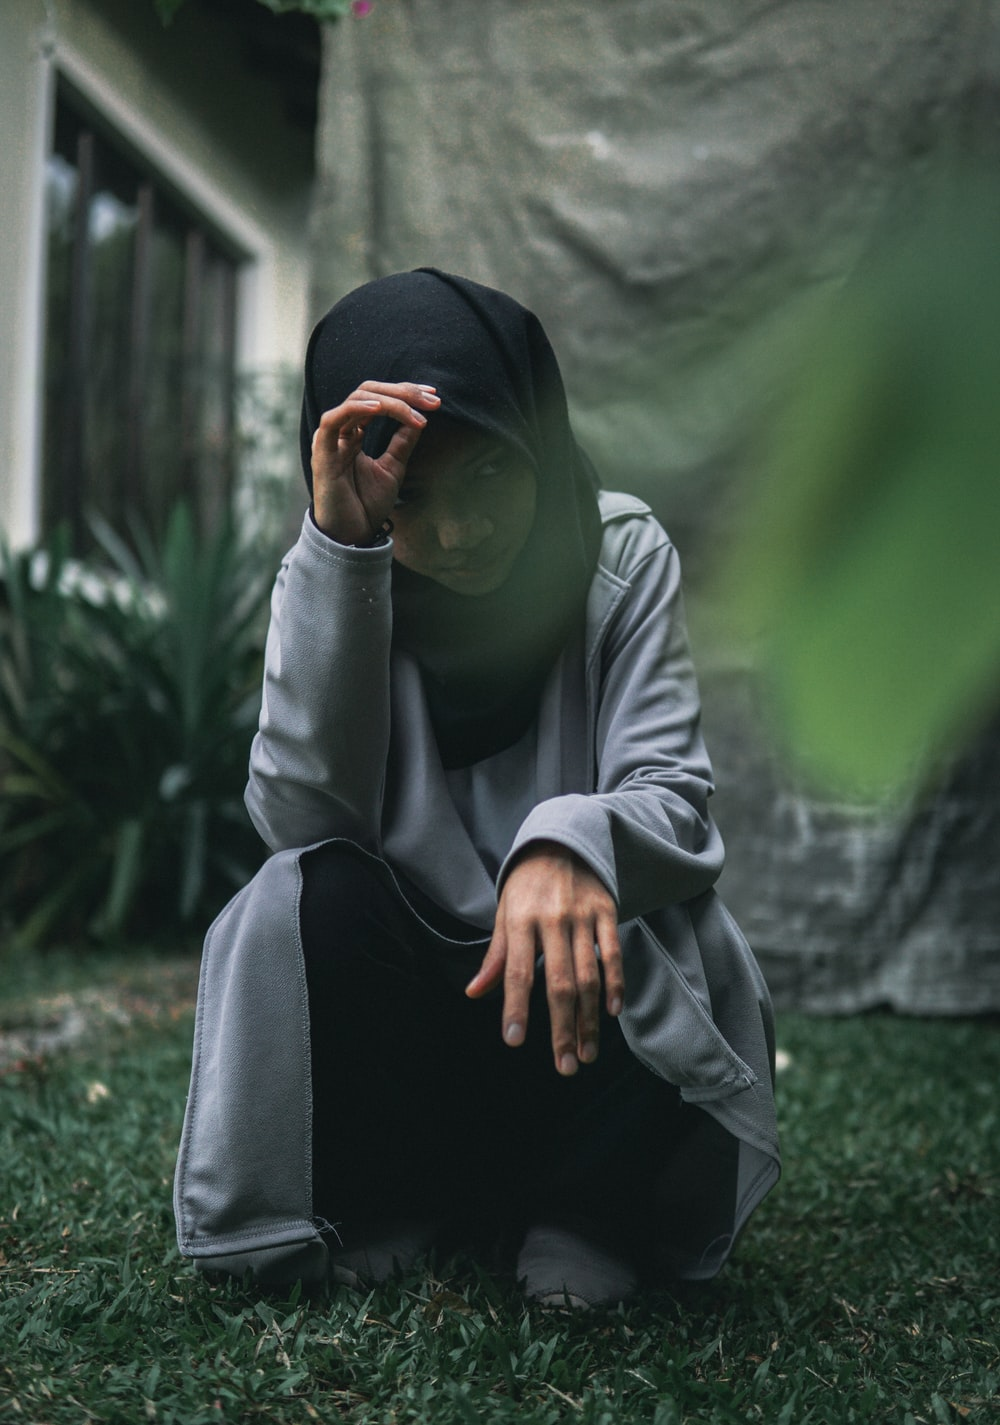 man in white thobe and black hijab sitting on green grass during daytime